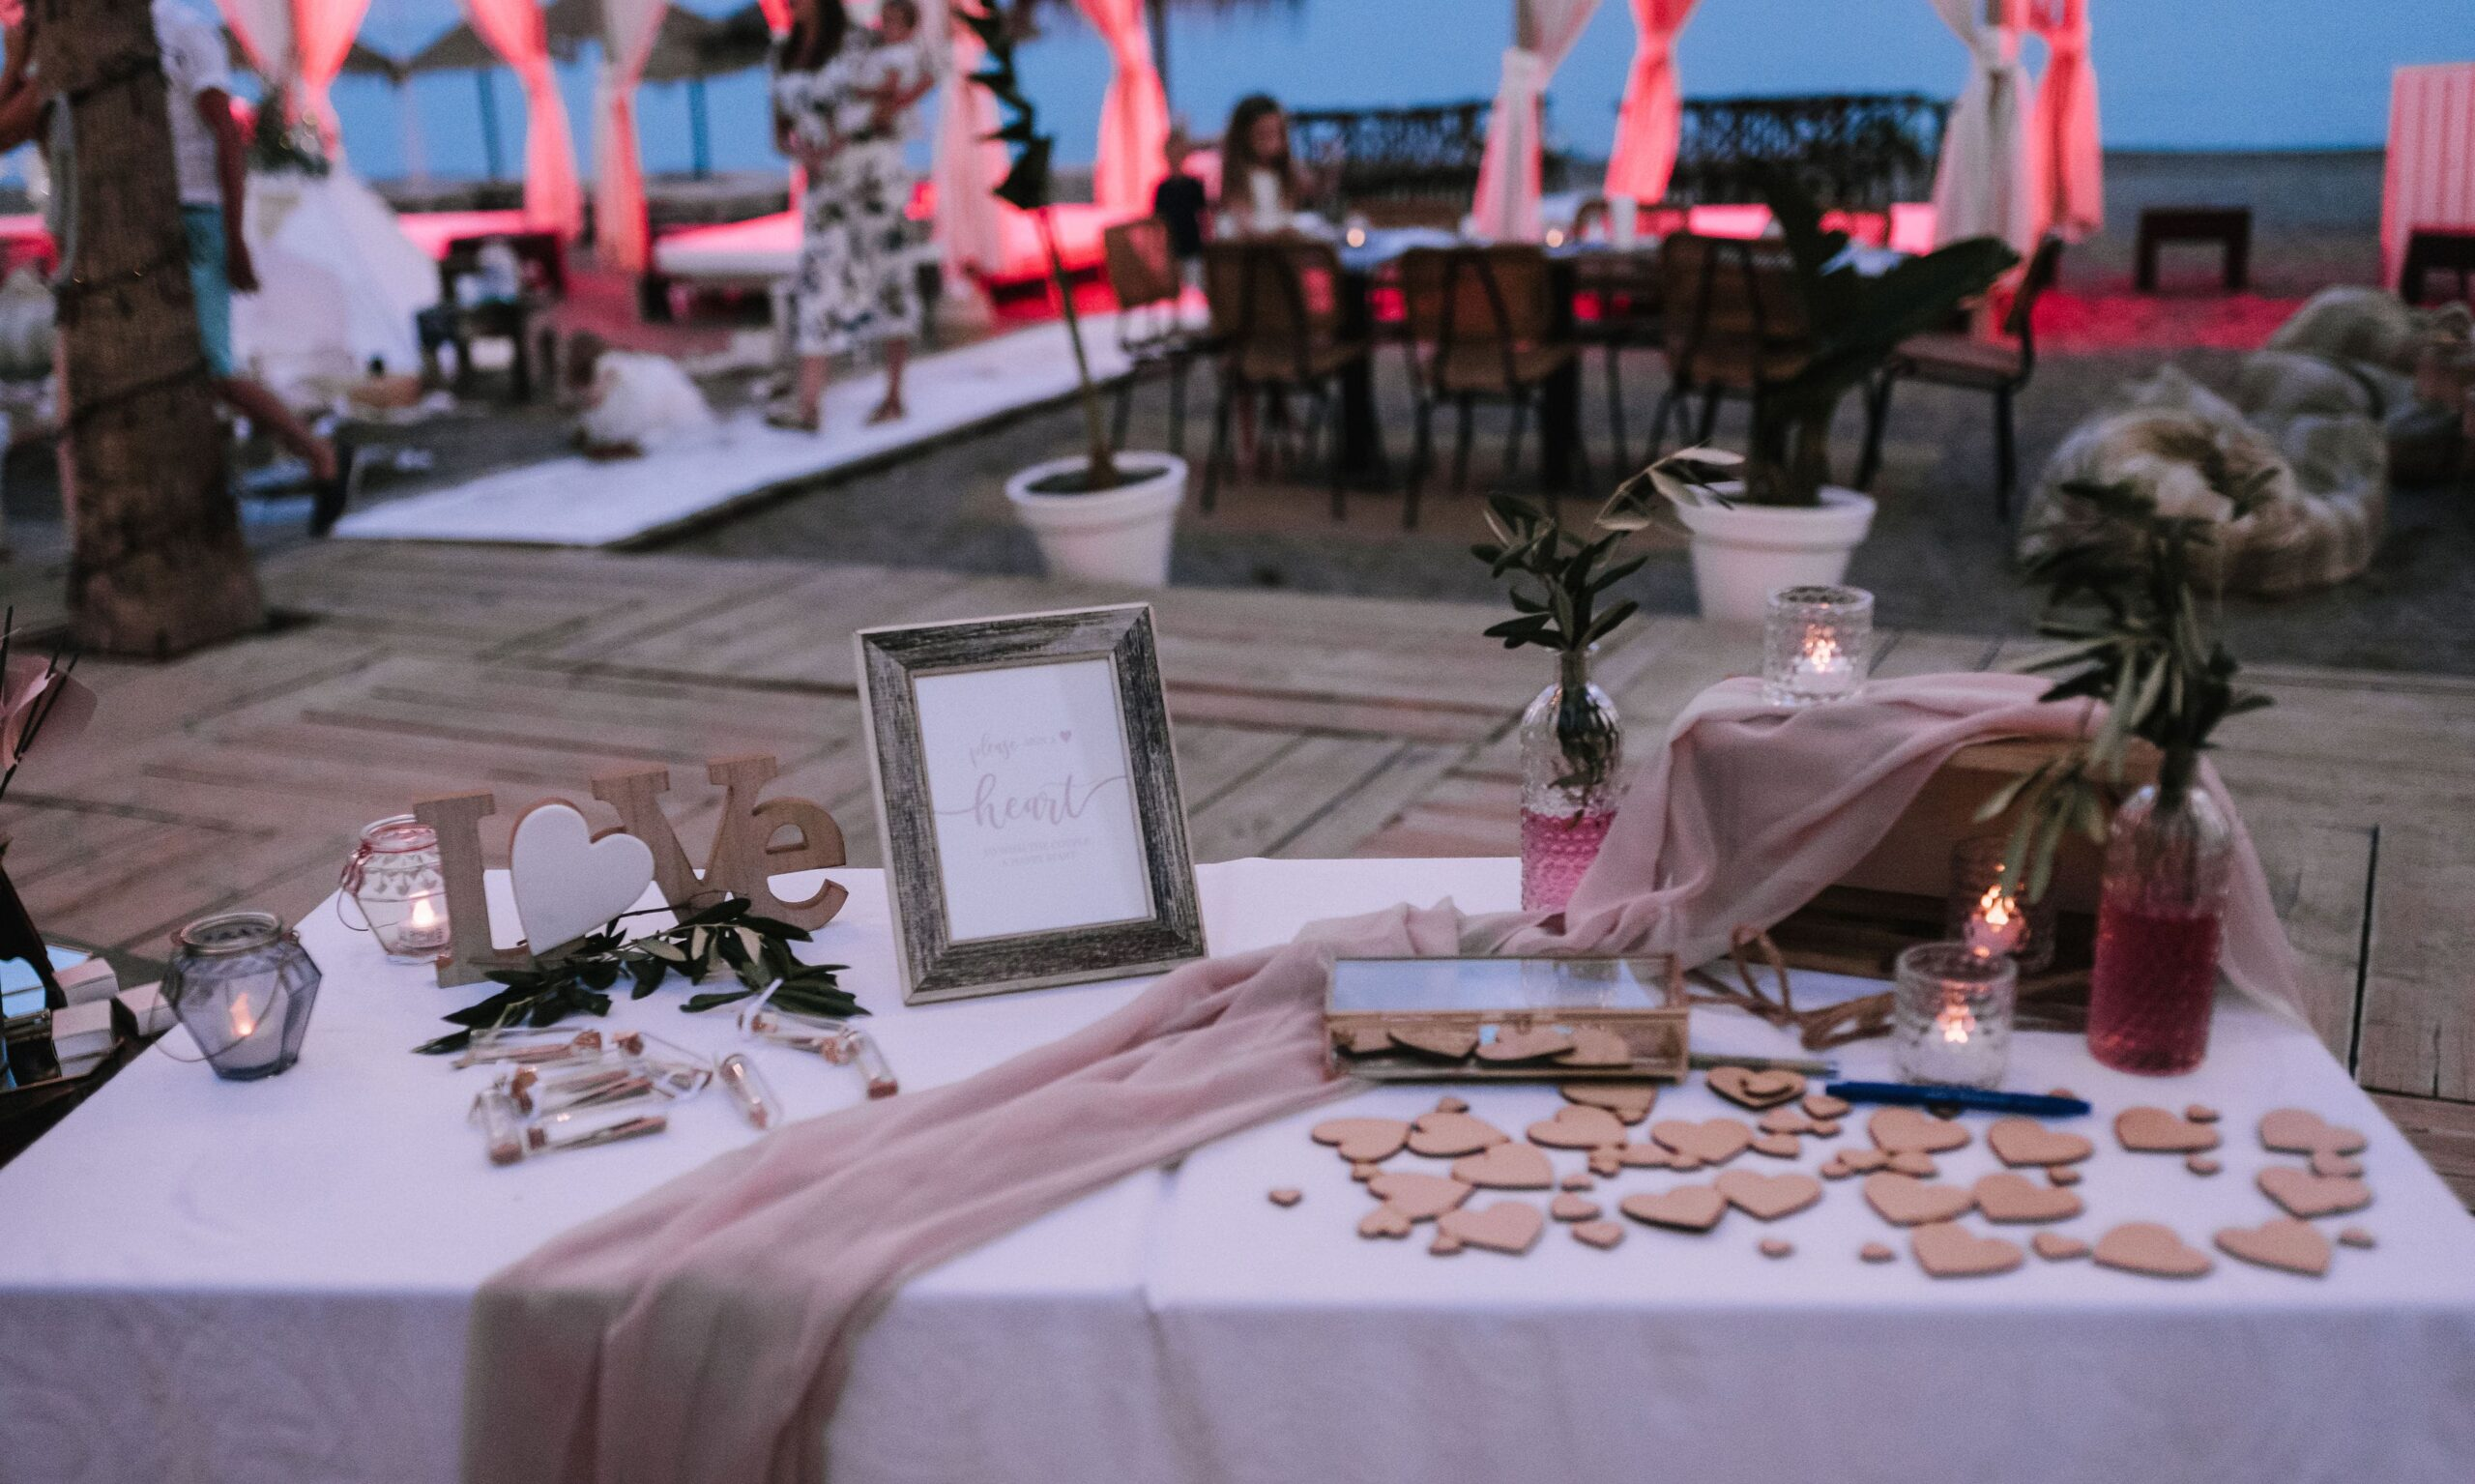 Styled beach wedding favours